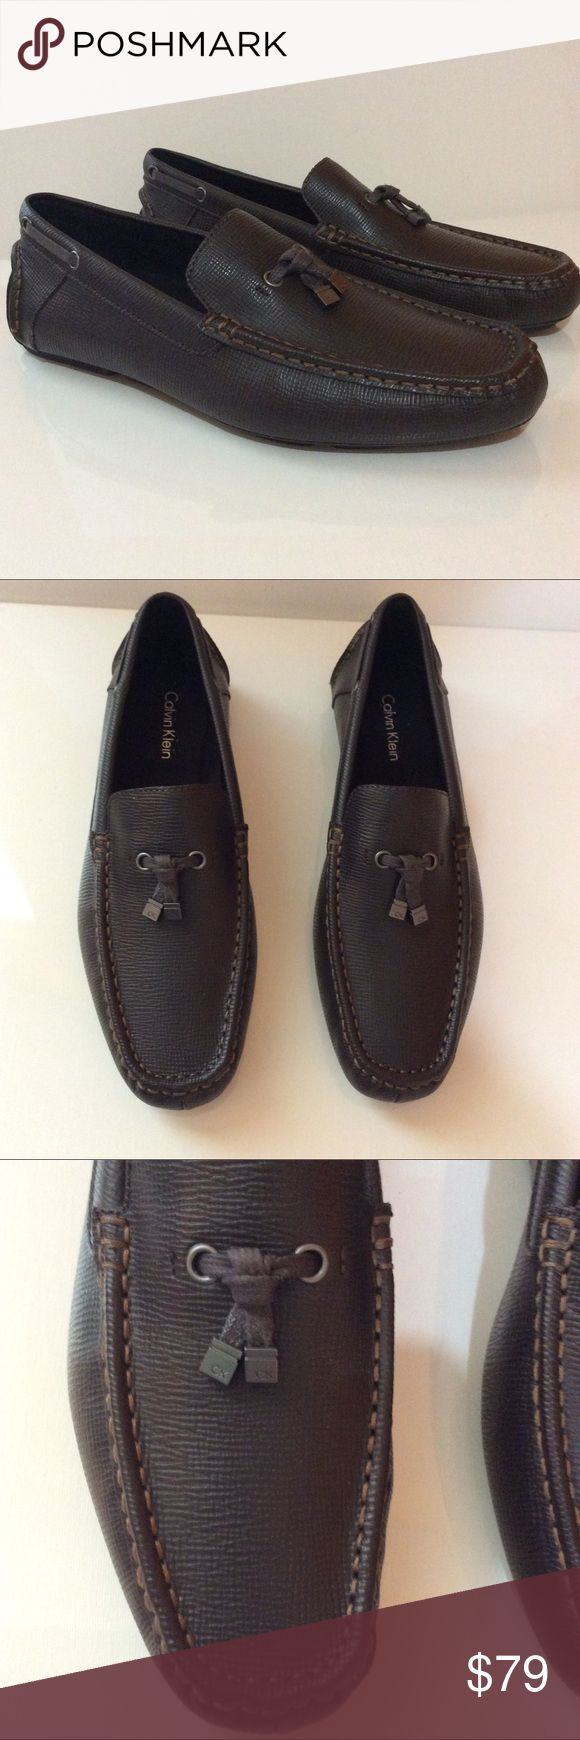 Calvin Klein Loafers Brand new. Leather. Calvin Klein Shoes Loafers & Slip-Ons